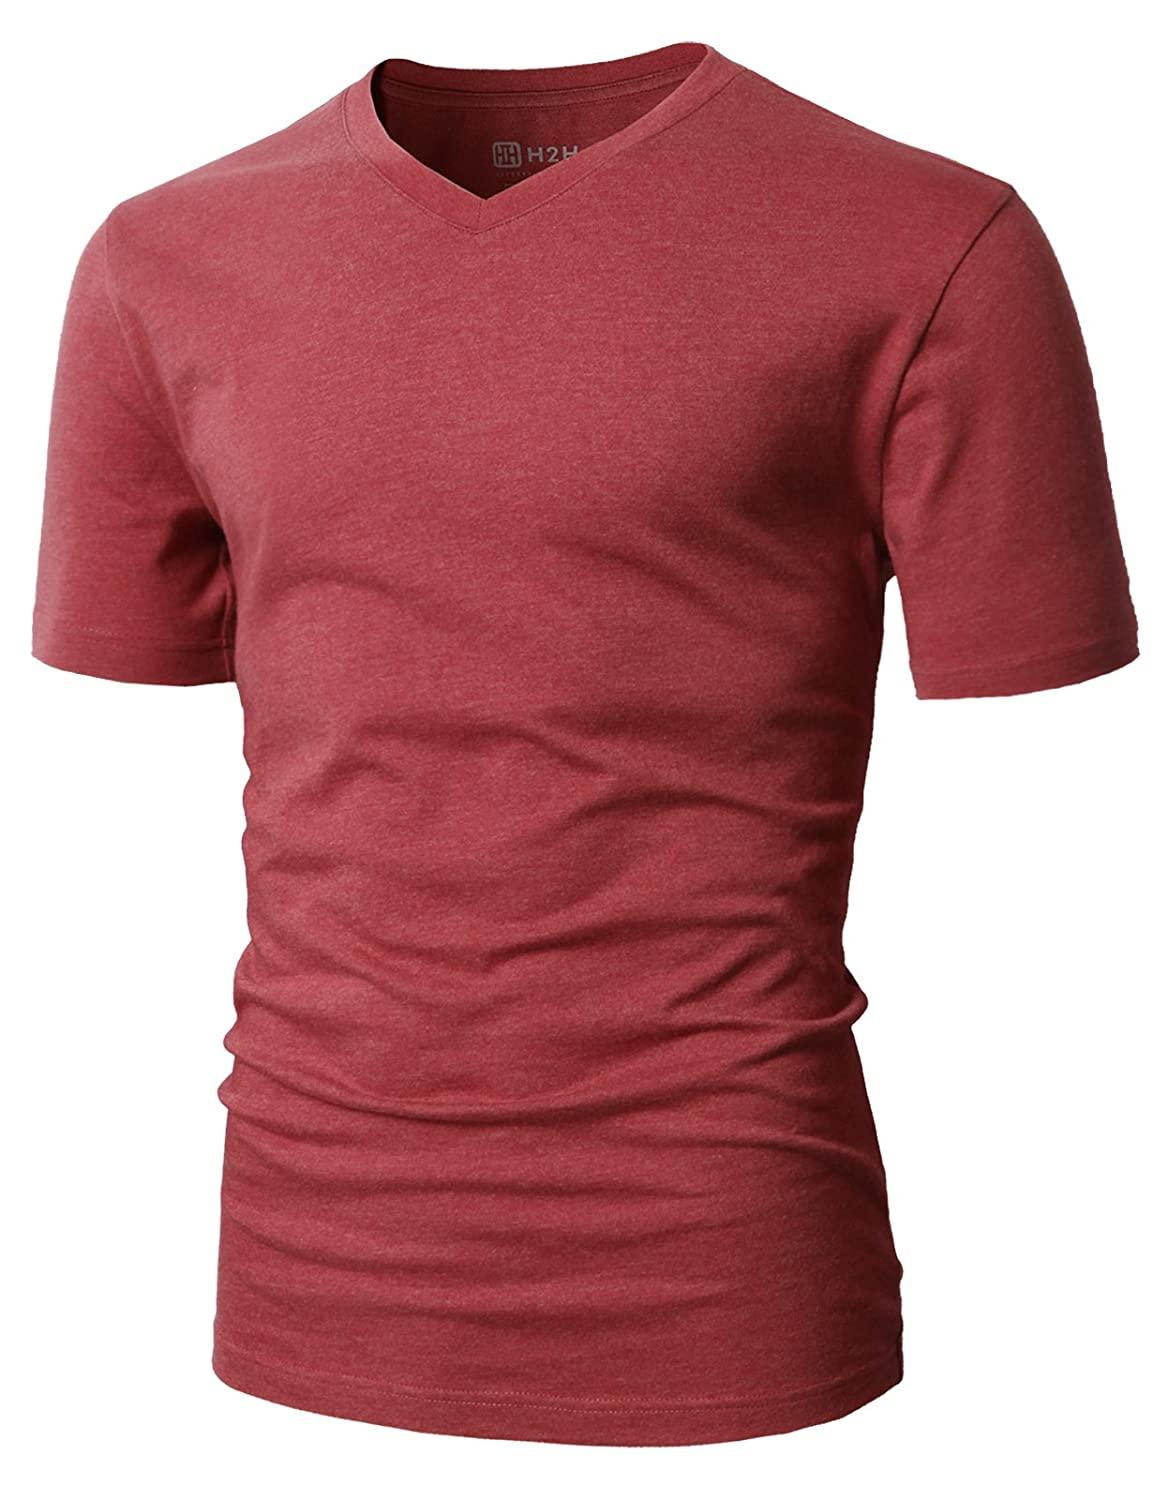 H2H Mens Casual Premium Soft Cotton Short Sleeve T-Shirts of Various Colors